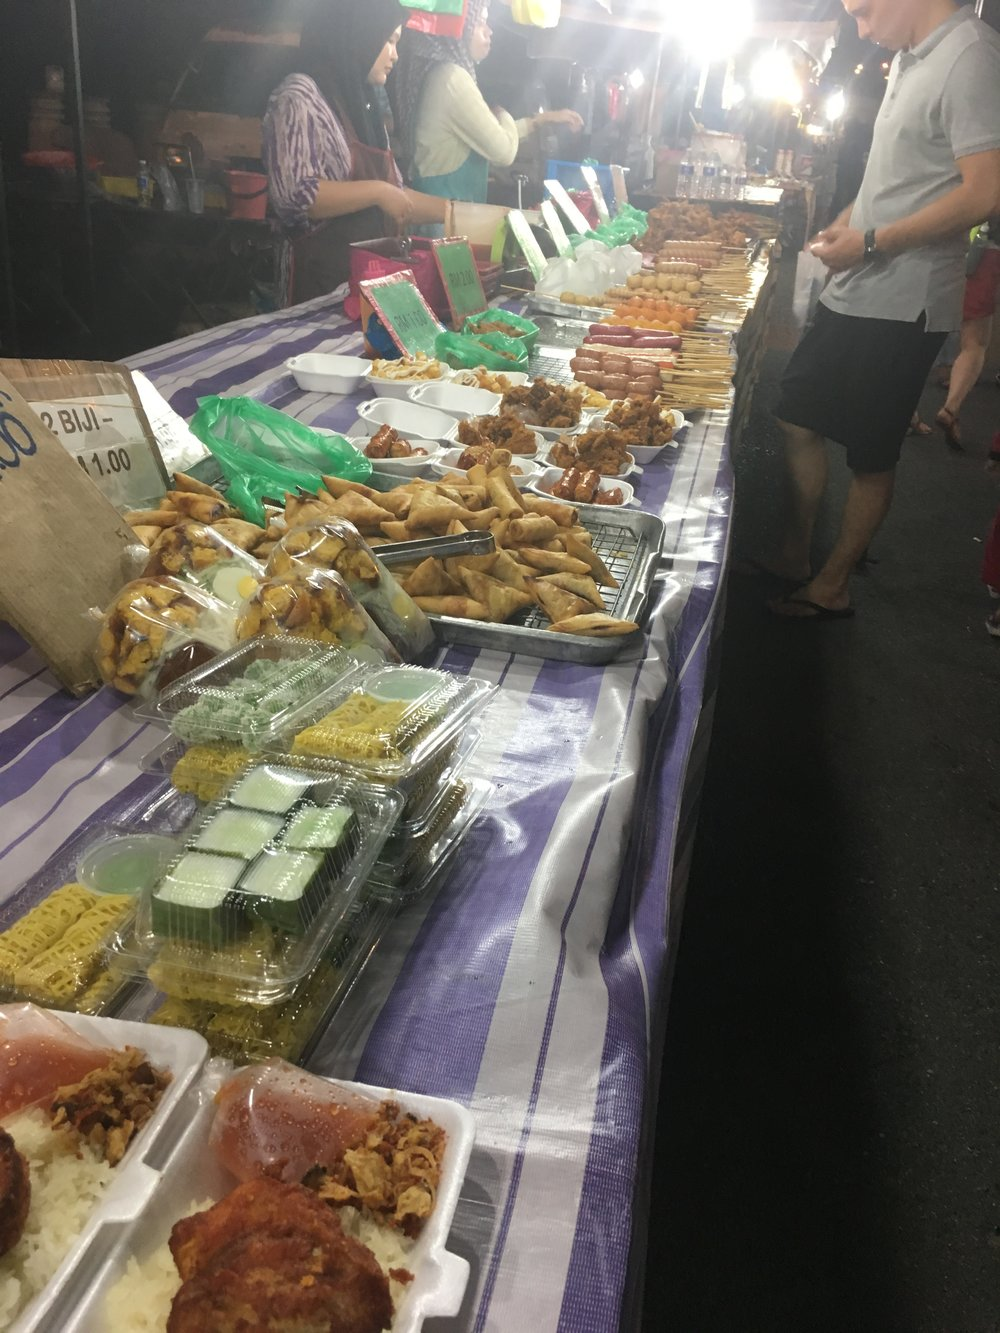 Selections of samosas spring rolls and other fried goods